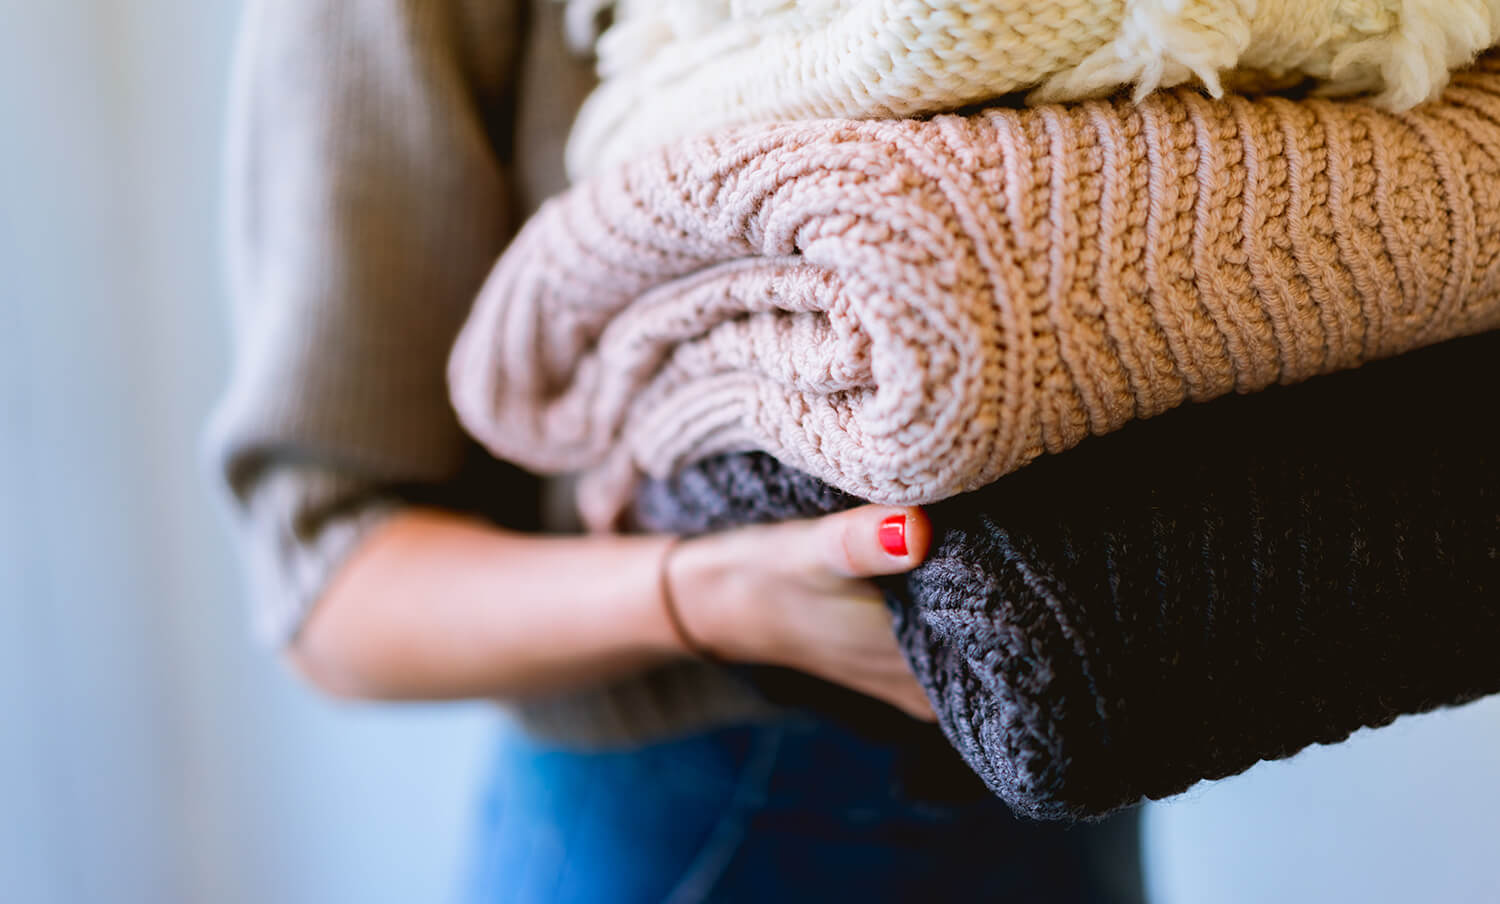 How to Take Care of Your Clothes to Make Them Last Longer